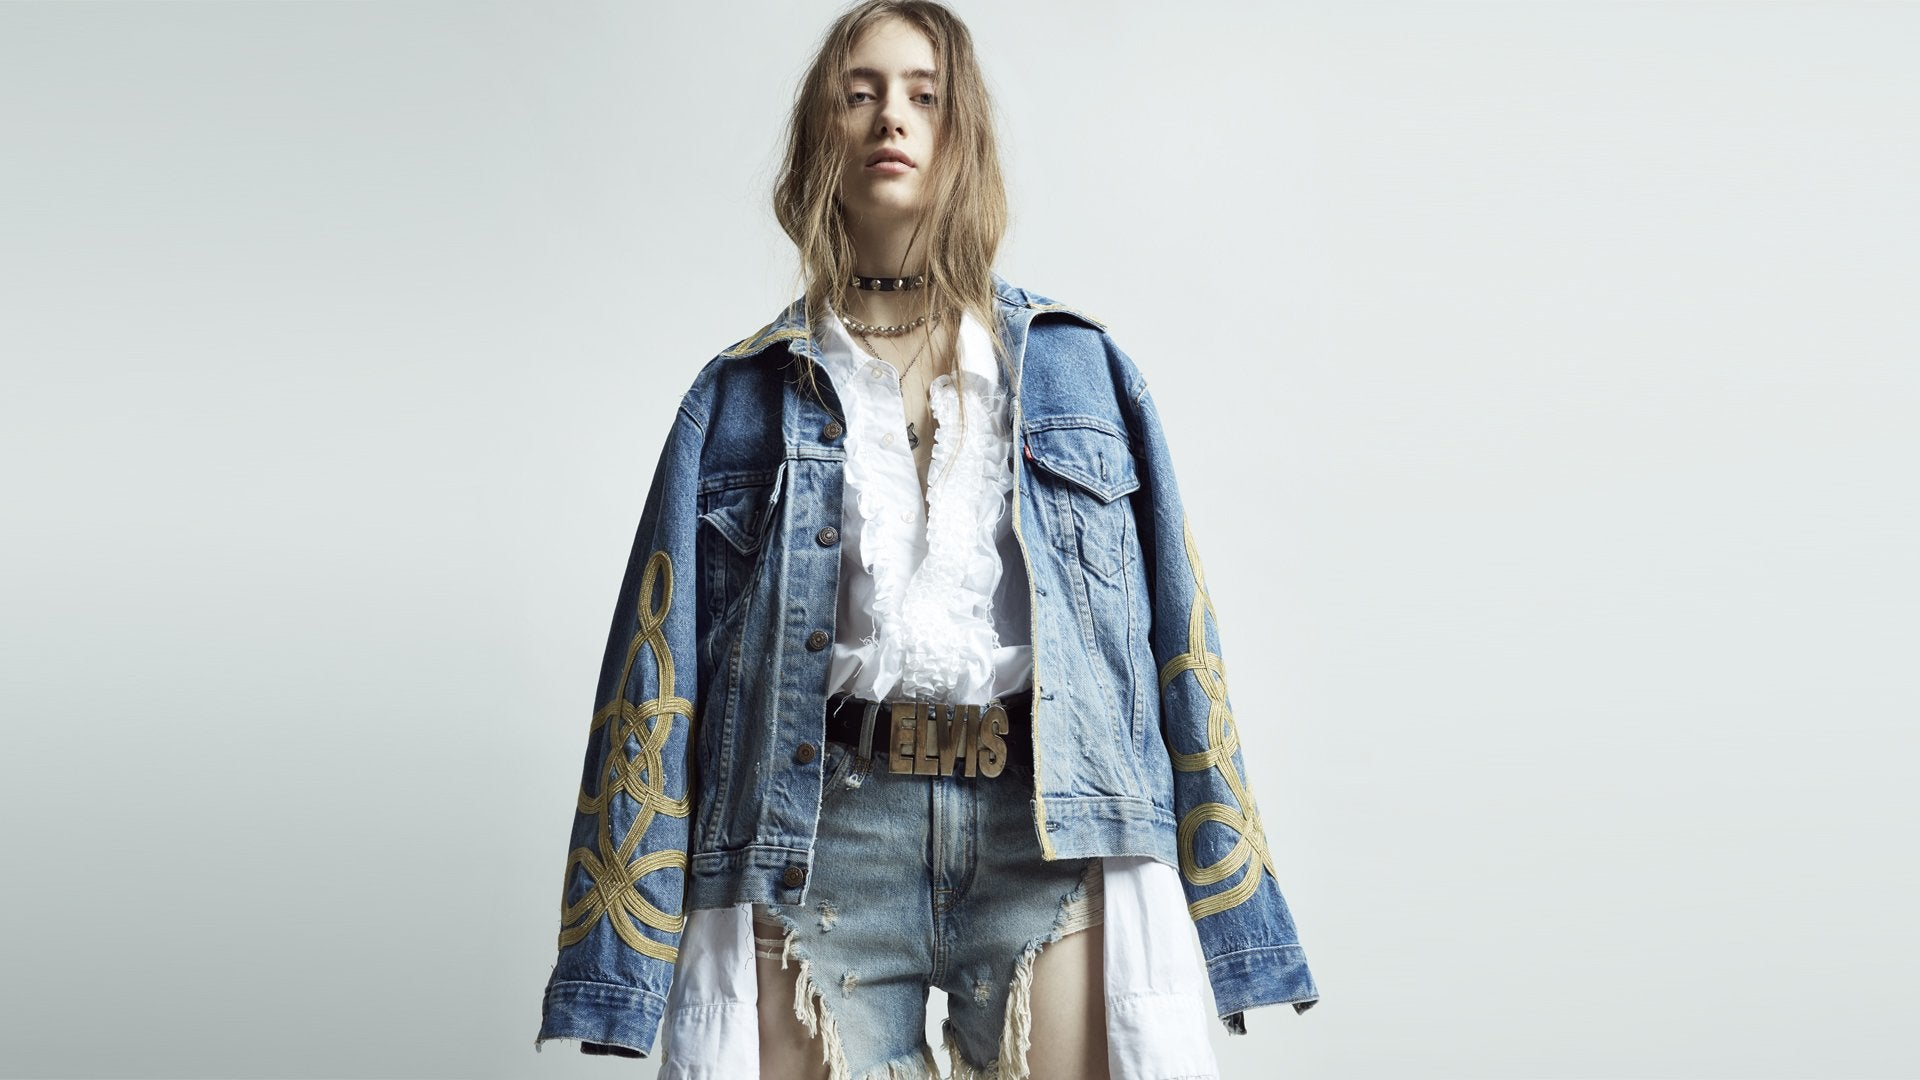 Womens PF19 Lookbook Image 6